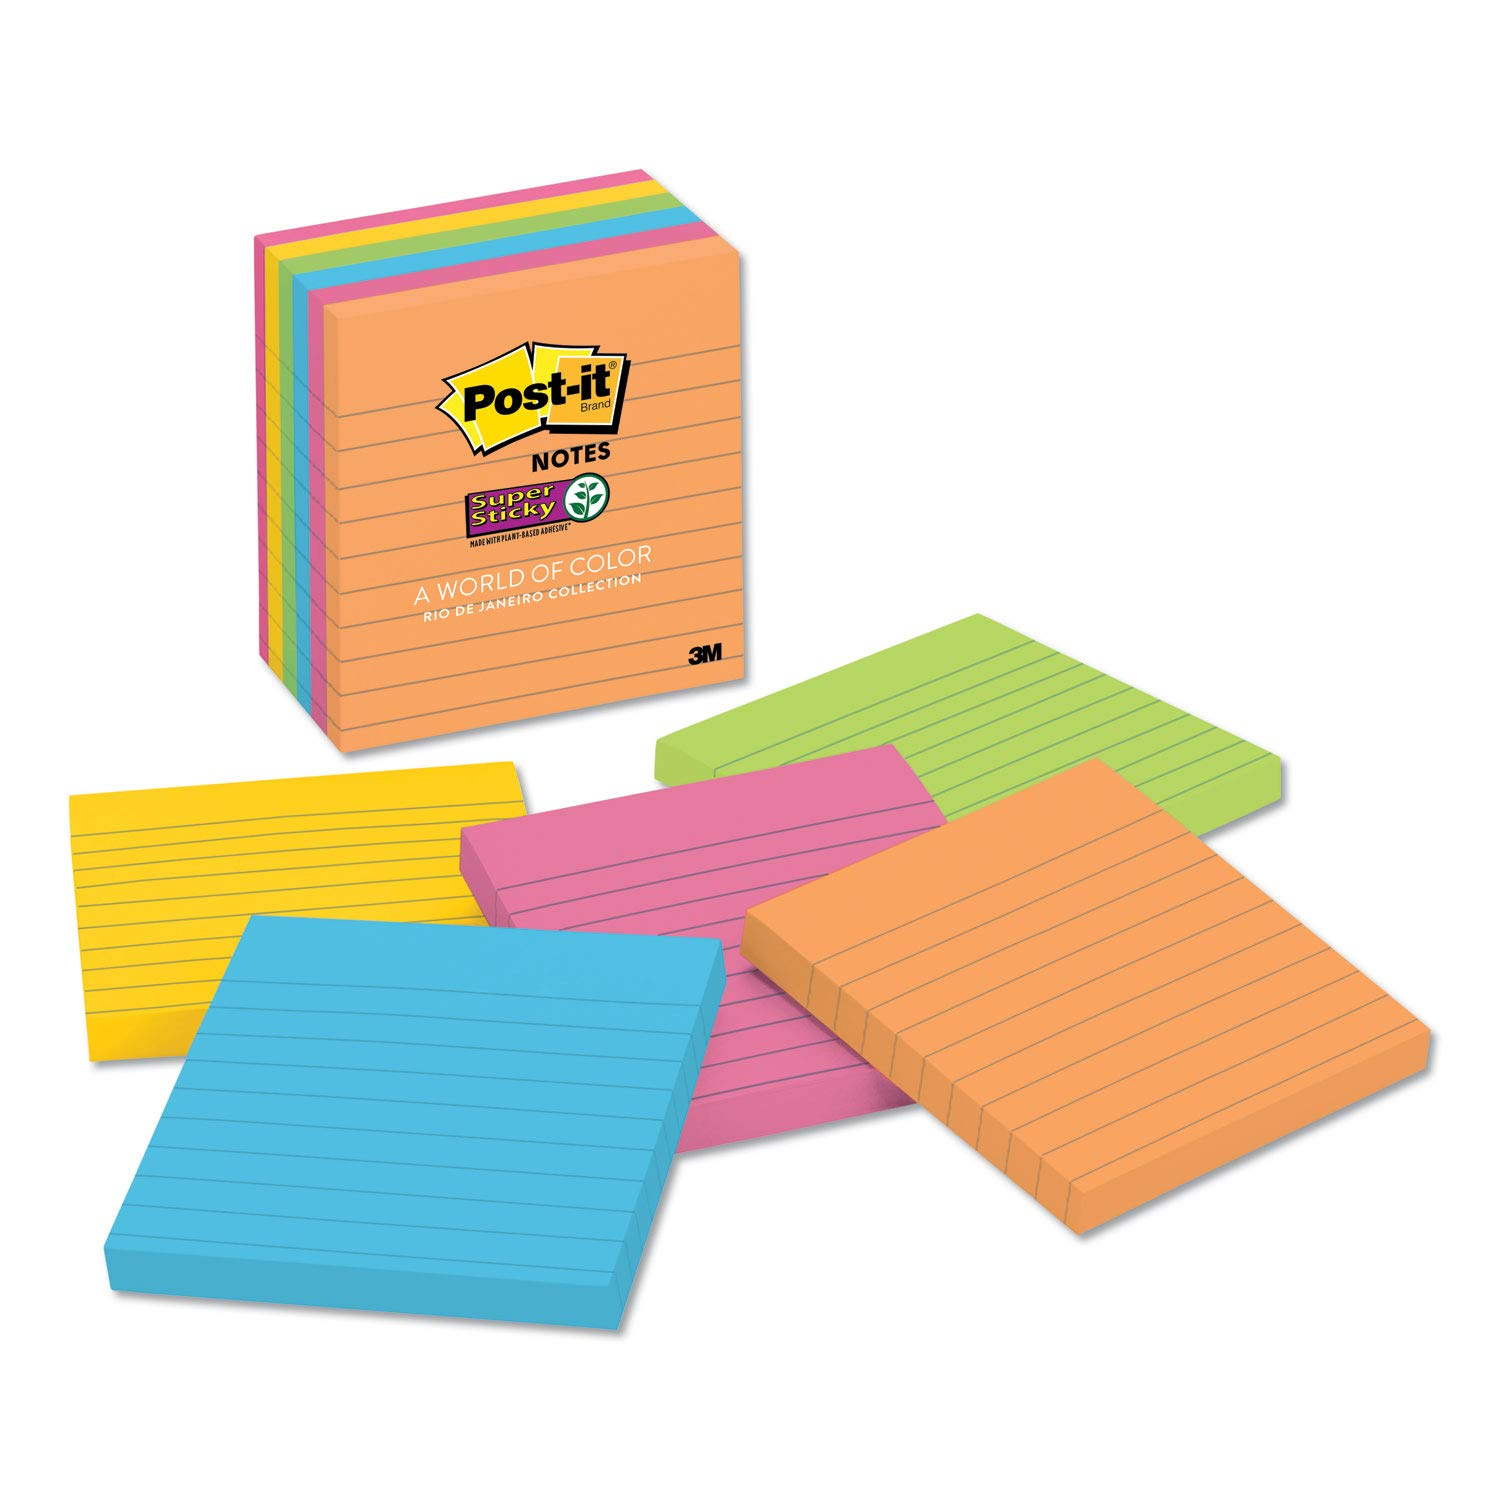 3M Pads in Rio De Janeiro Colors, Lined, 4 X 4, 90-Sheet, 6/Pack